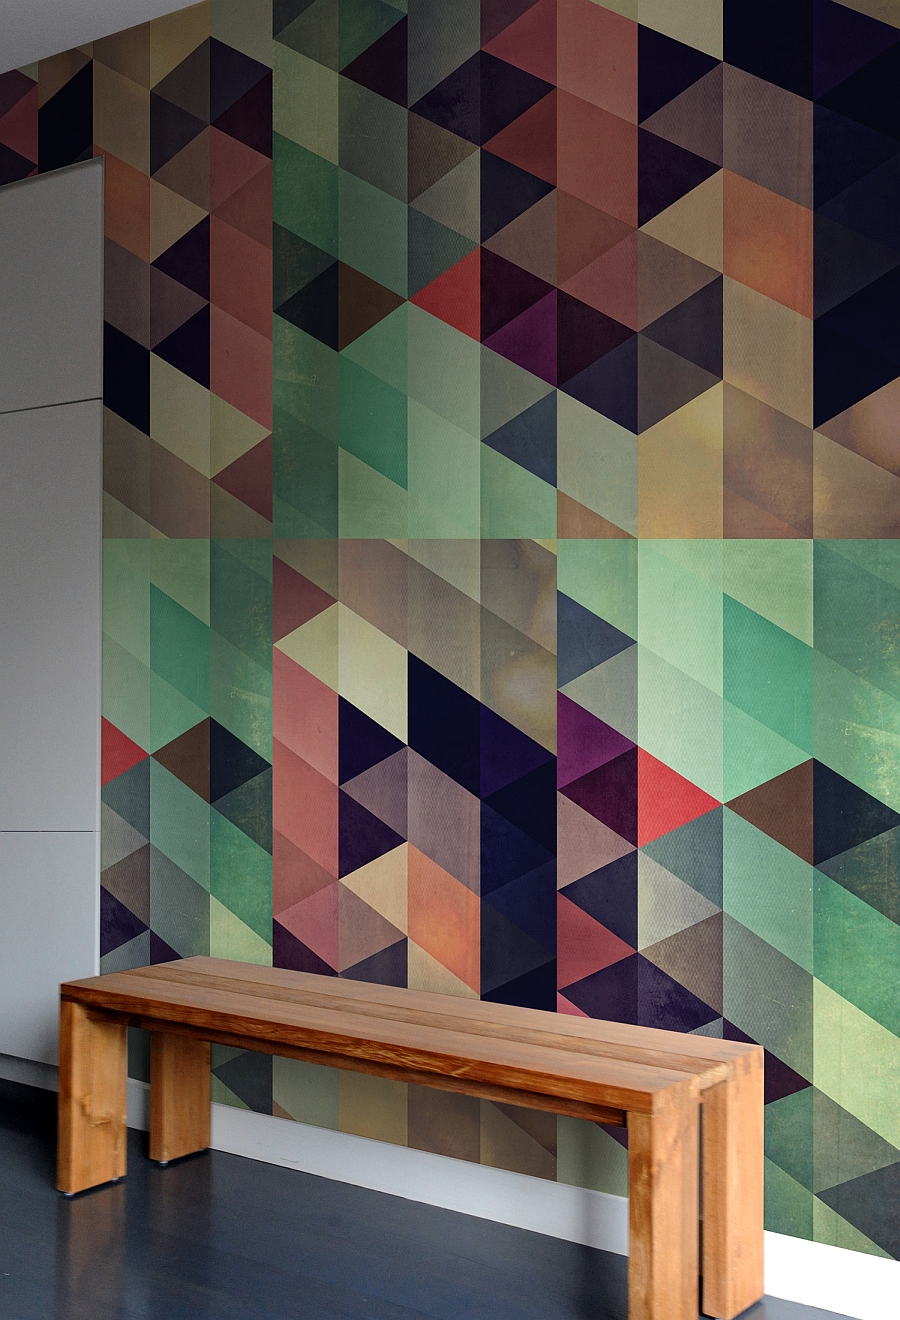 Wall Design Tiles textured tiles have a softer impact enhancing the art deco design without being too overpowering View In Gallery Creative And Colorful Wall Tile Designs